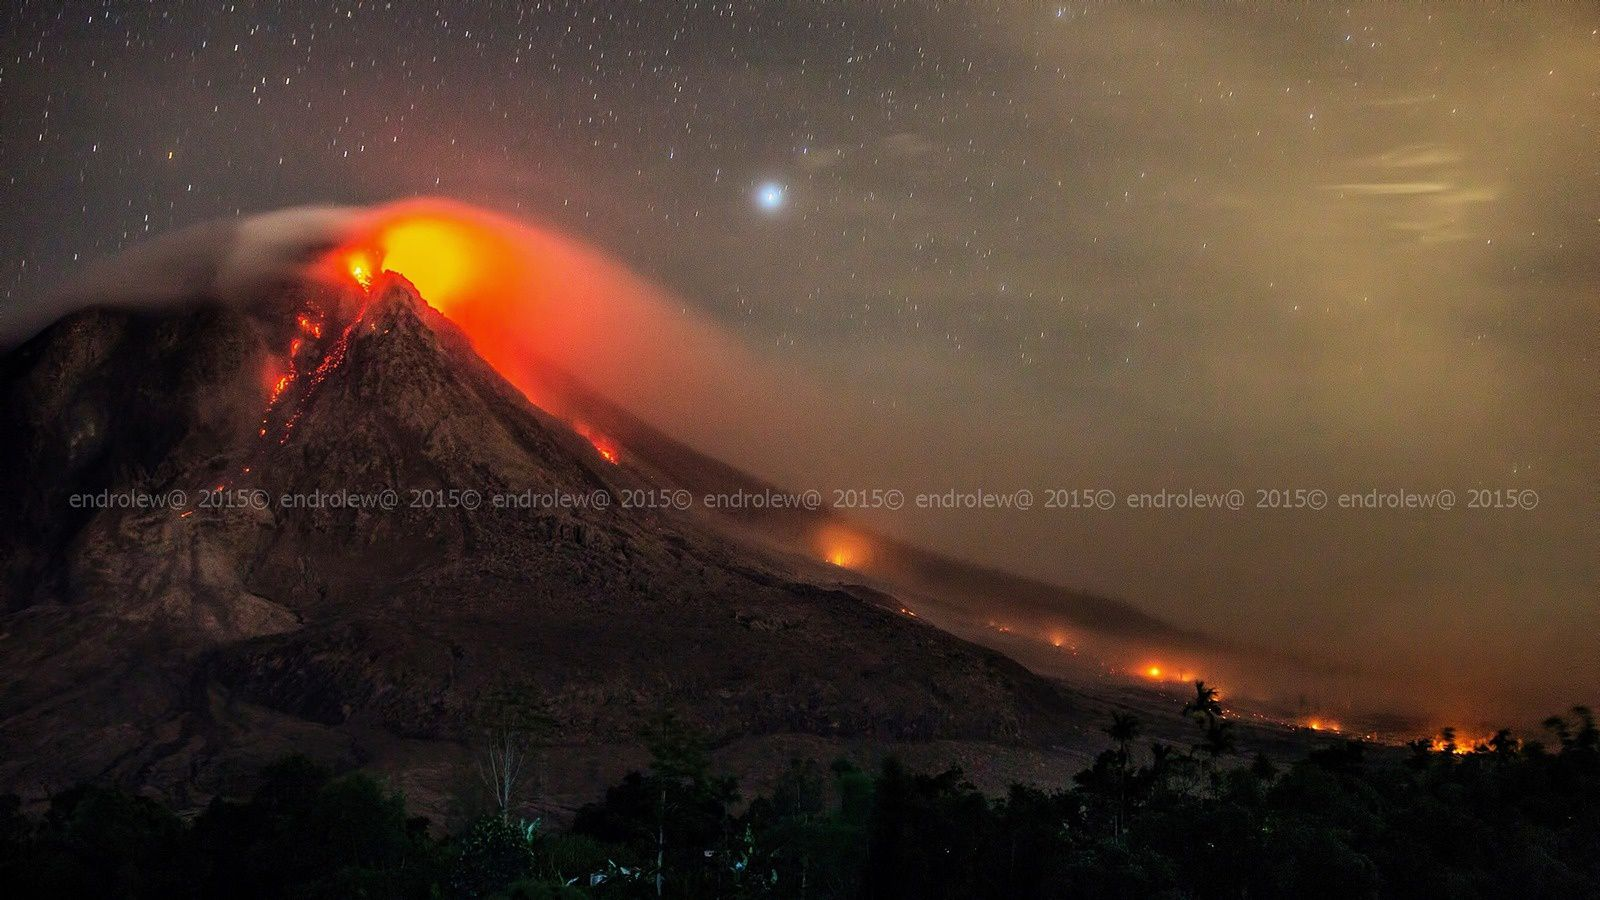 Sinabung the 22.06.2015 / 1:13 - fires demonstrate the long travel of the morning flow - photo endrolew@